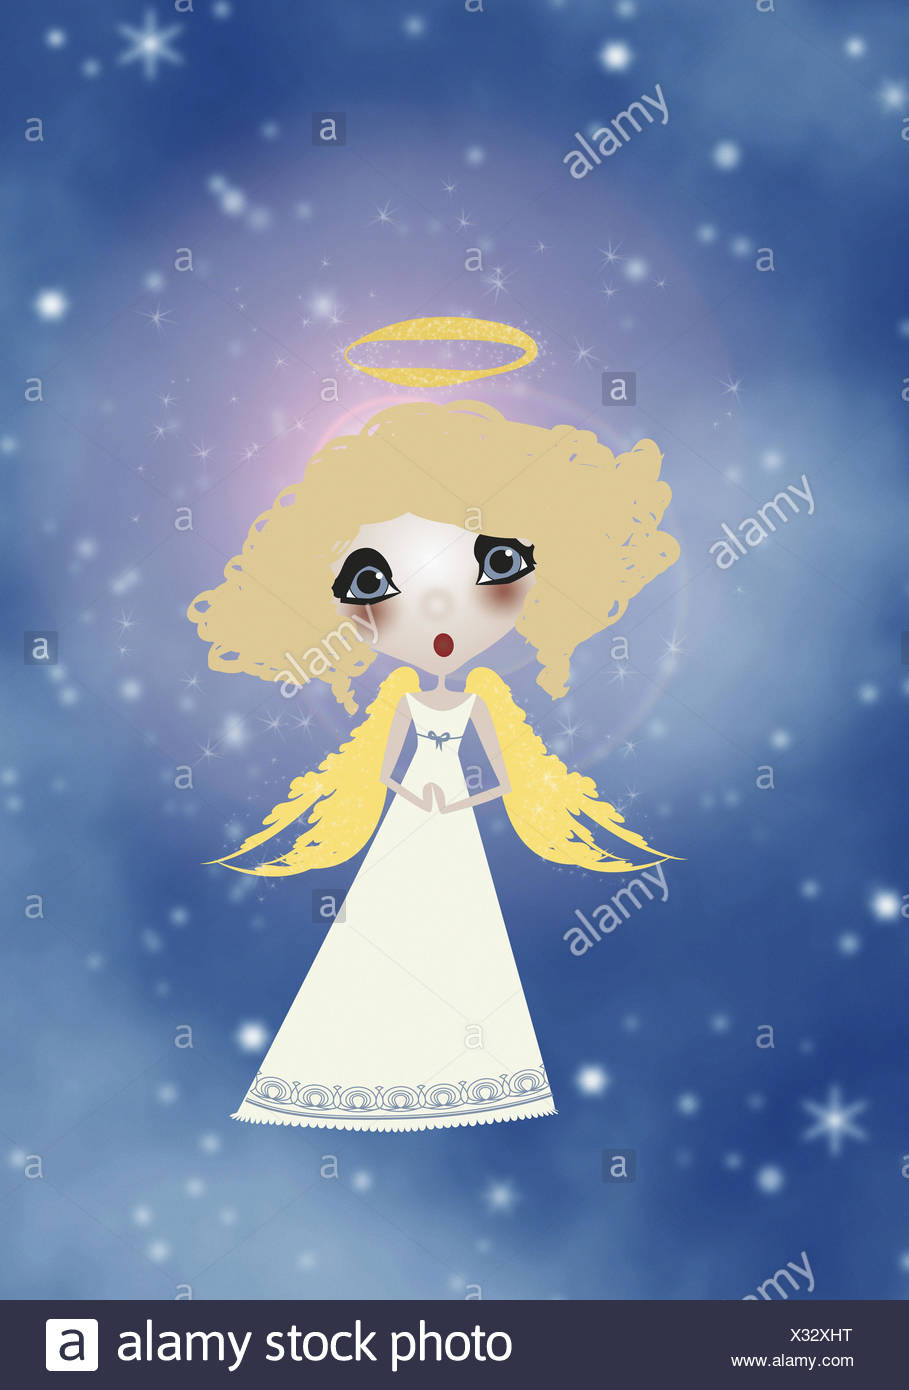 Illustration, sky, angel, blond, sing, graphics, stars, celestial body, figure, little angel, infant Jesus, for Christmas, heavenly, holy, halo, wing, fly, song, music, astonished, whole body, - Stock Image